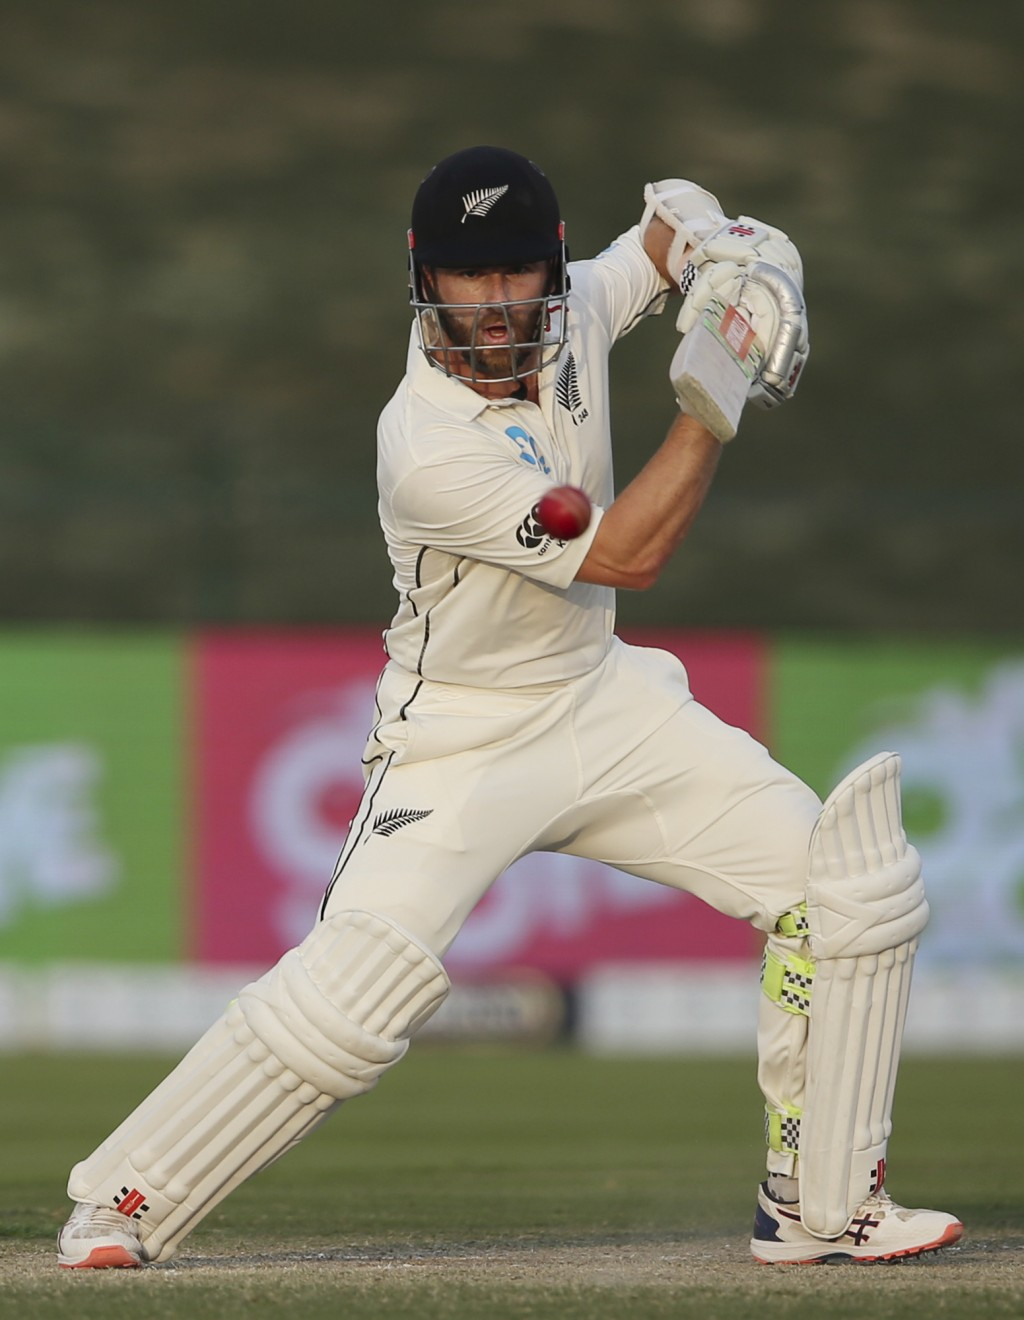 New Zealand's batsman Kane Williamson plays a shot in their test match against Pakistan in Abu Dhabi, United Arab Emirates, Wednesday, Dec. 5, 2018. (